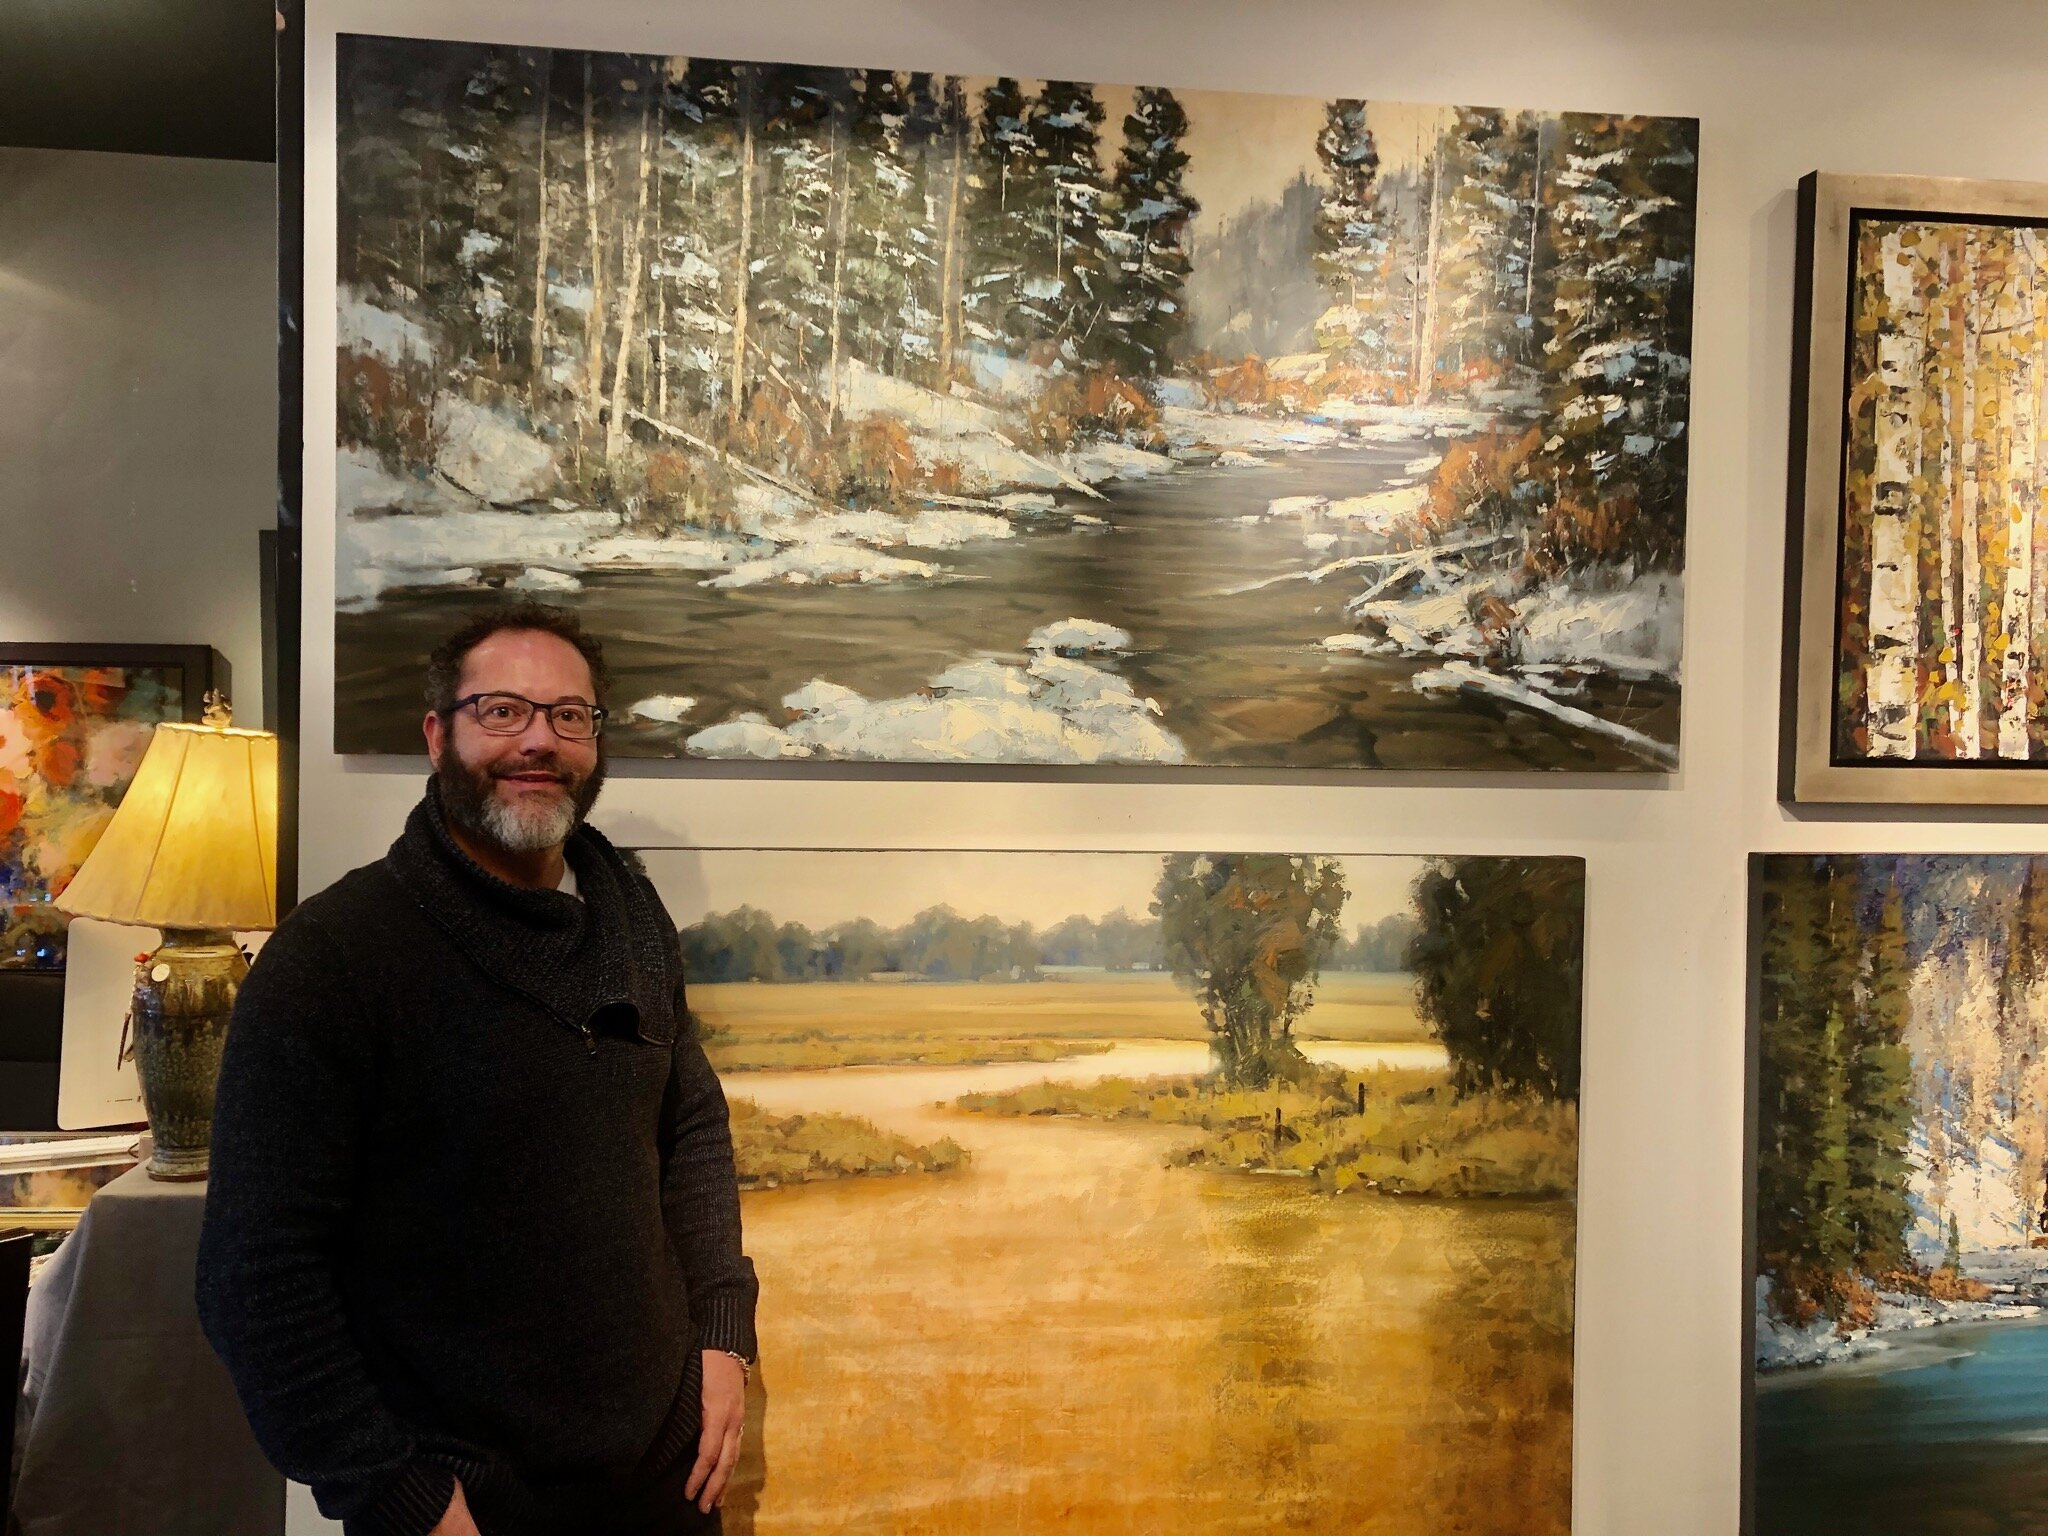 Park City Gallery Spotlight Lunds Fine Art Gallery Arts Council Park City Summit County